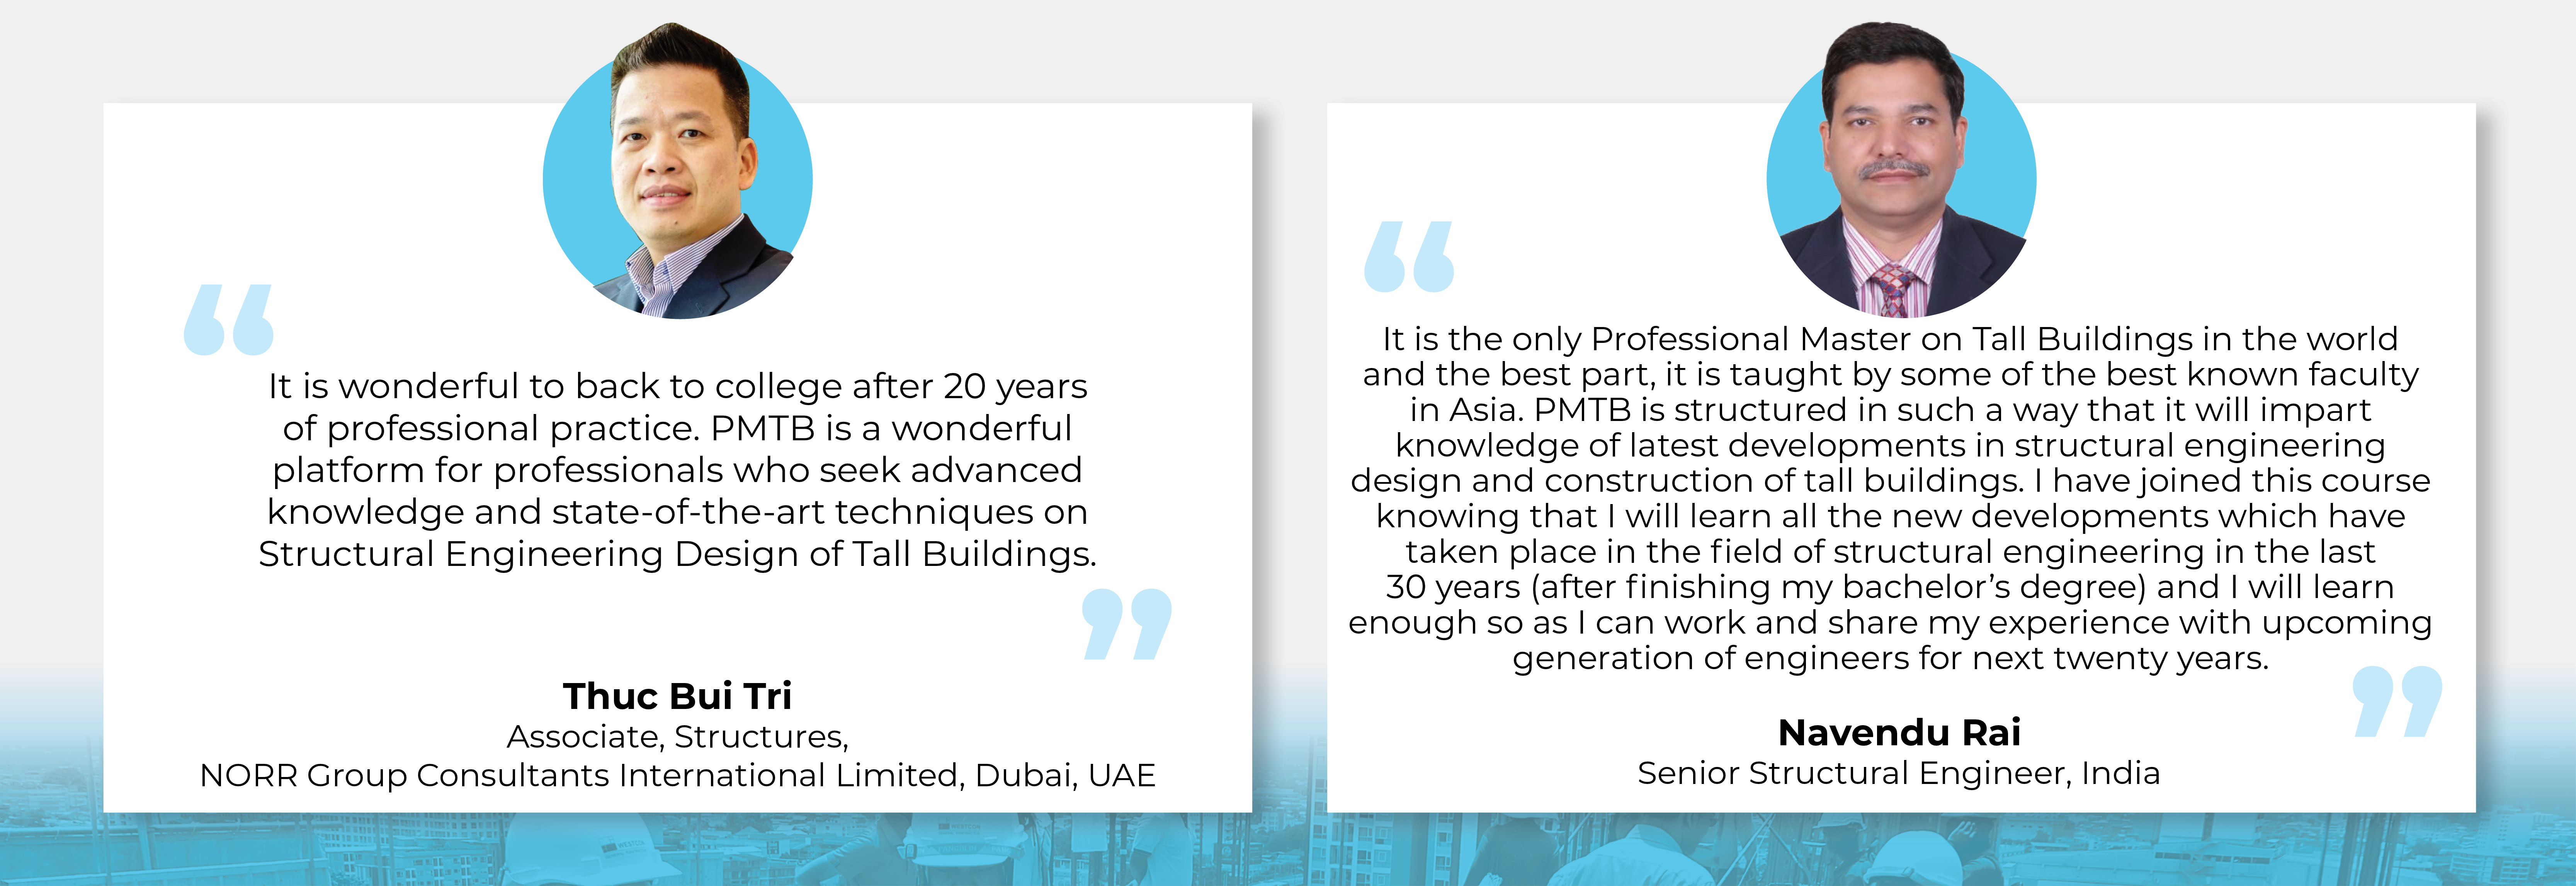 Ait Solutions Professional Master Degree In Structural Design Of Tall Buildings